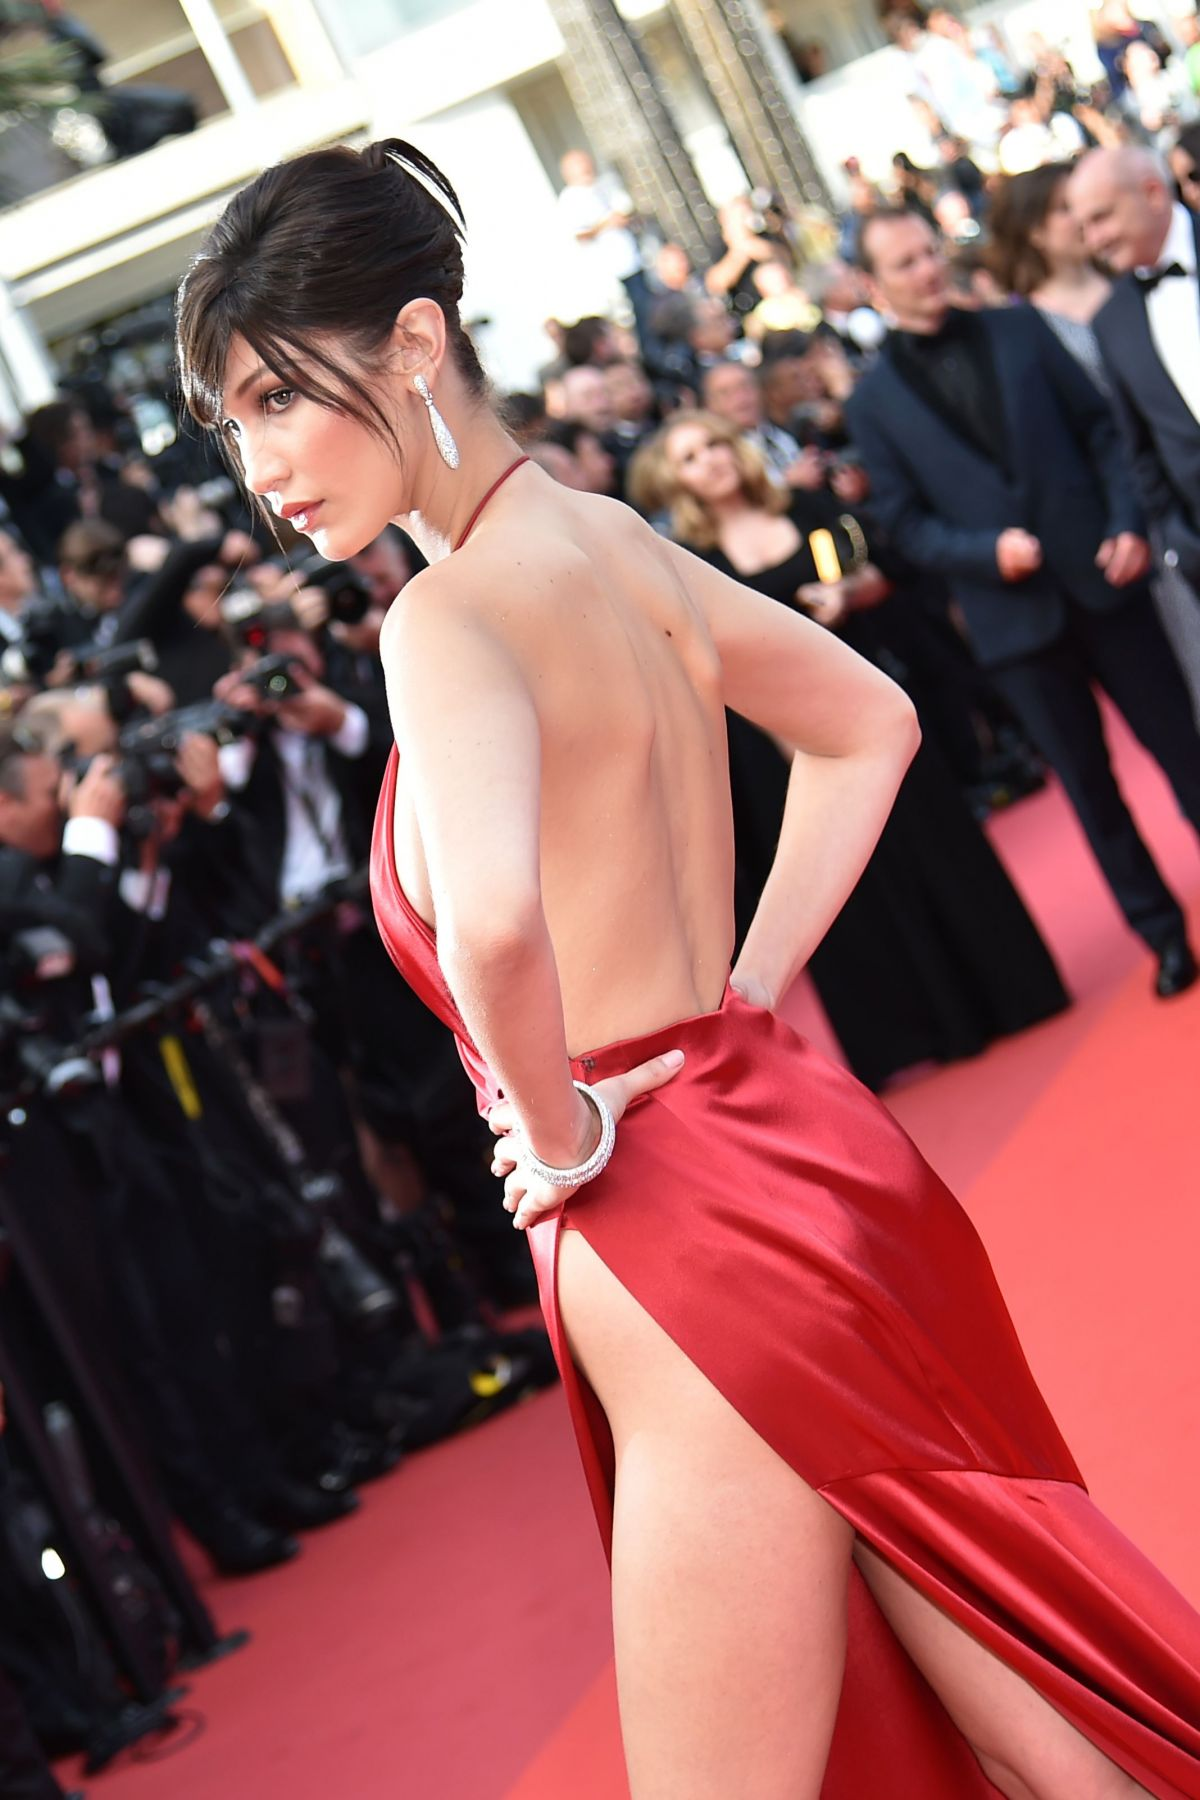 http-forum.ns4w.org-showthread.php-570203-bella-hadid-the-unknown-girl-premiere-at-69th-annual-cannes-film-festival-05-18-16-adds-s-08ce82a2f025b7305318944fd6bd9518_7